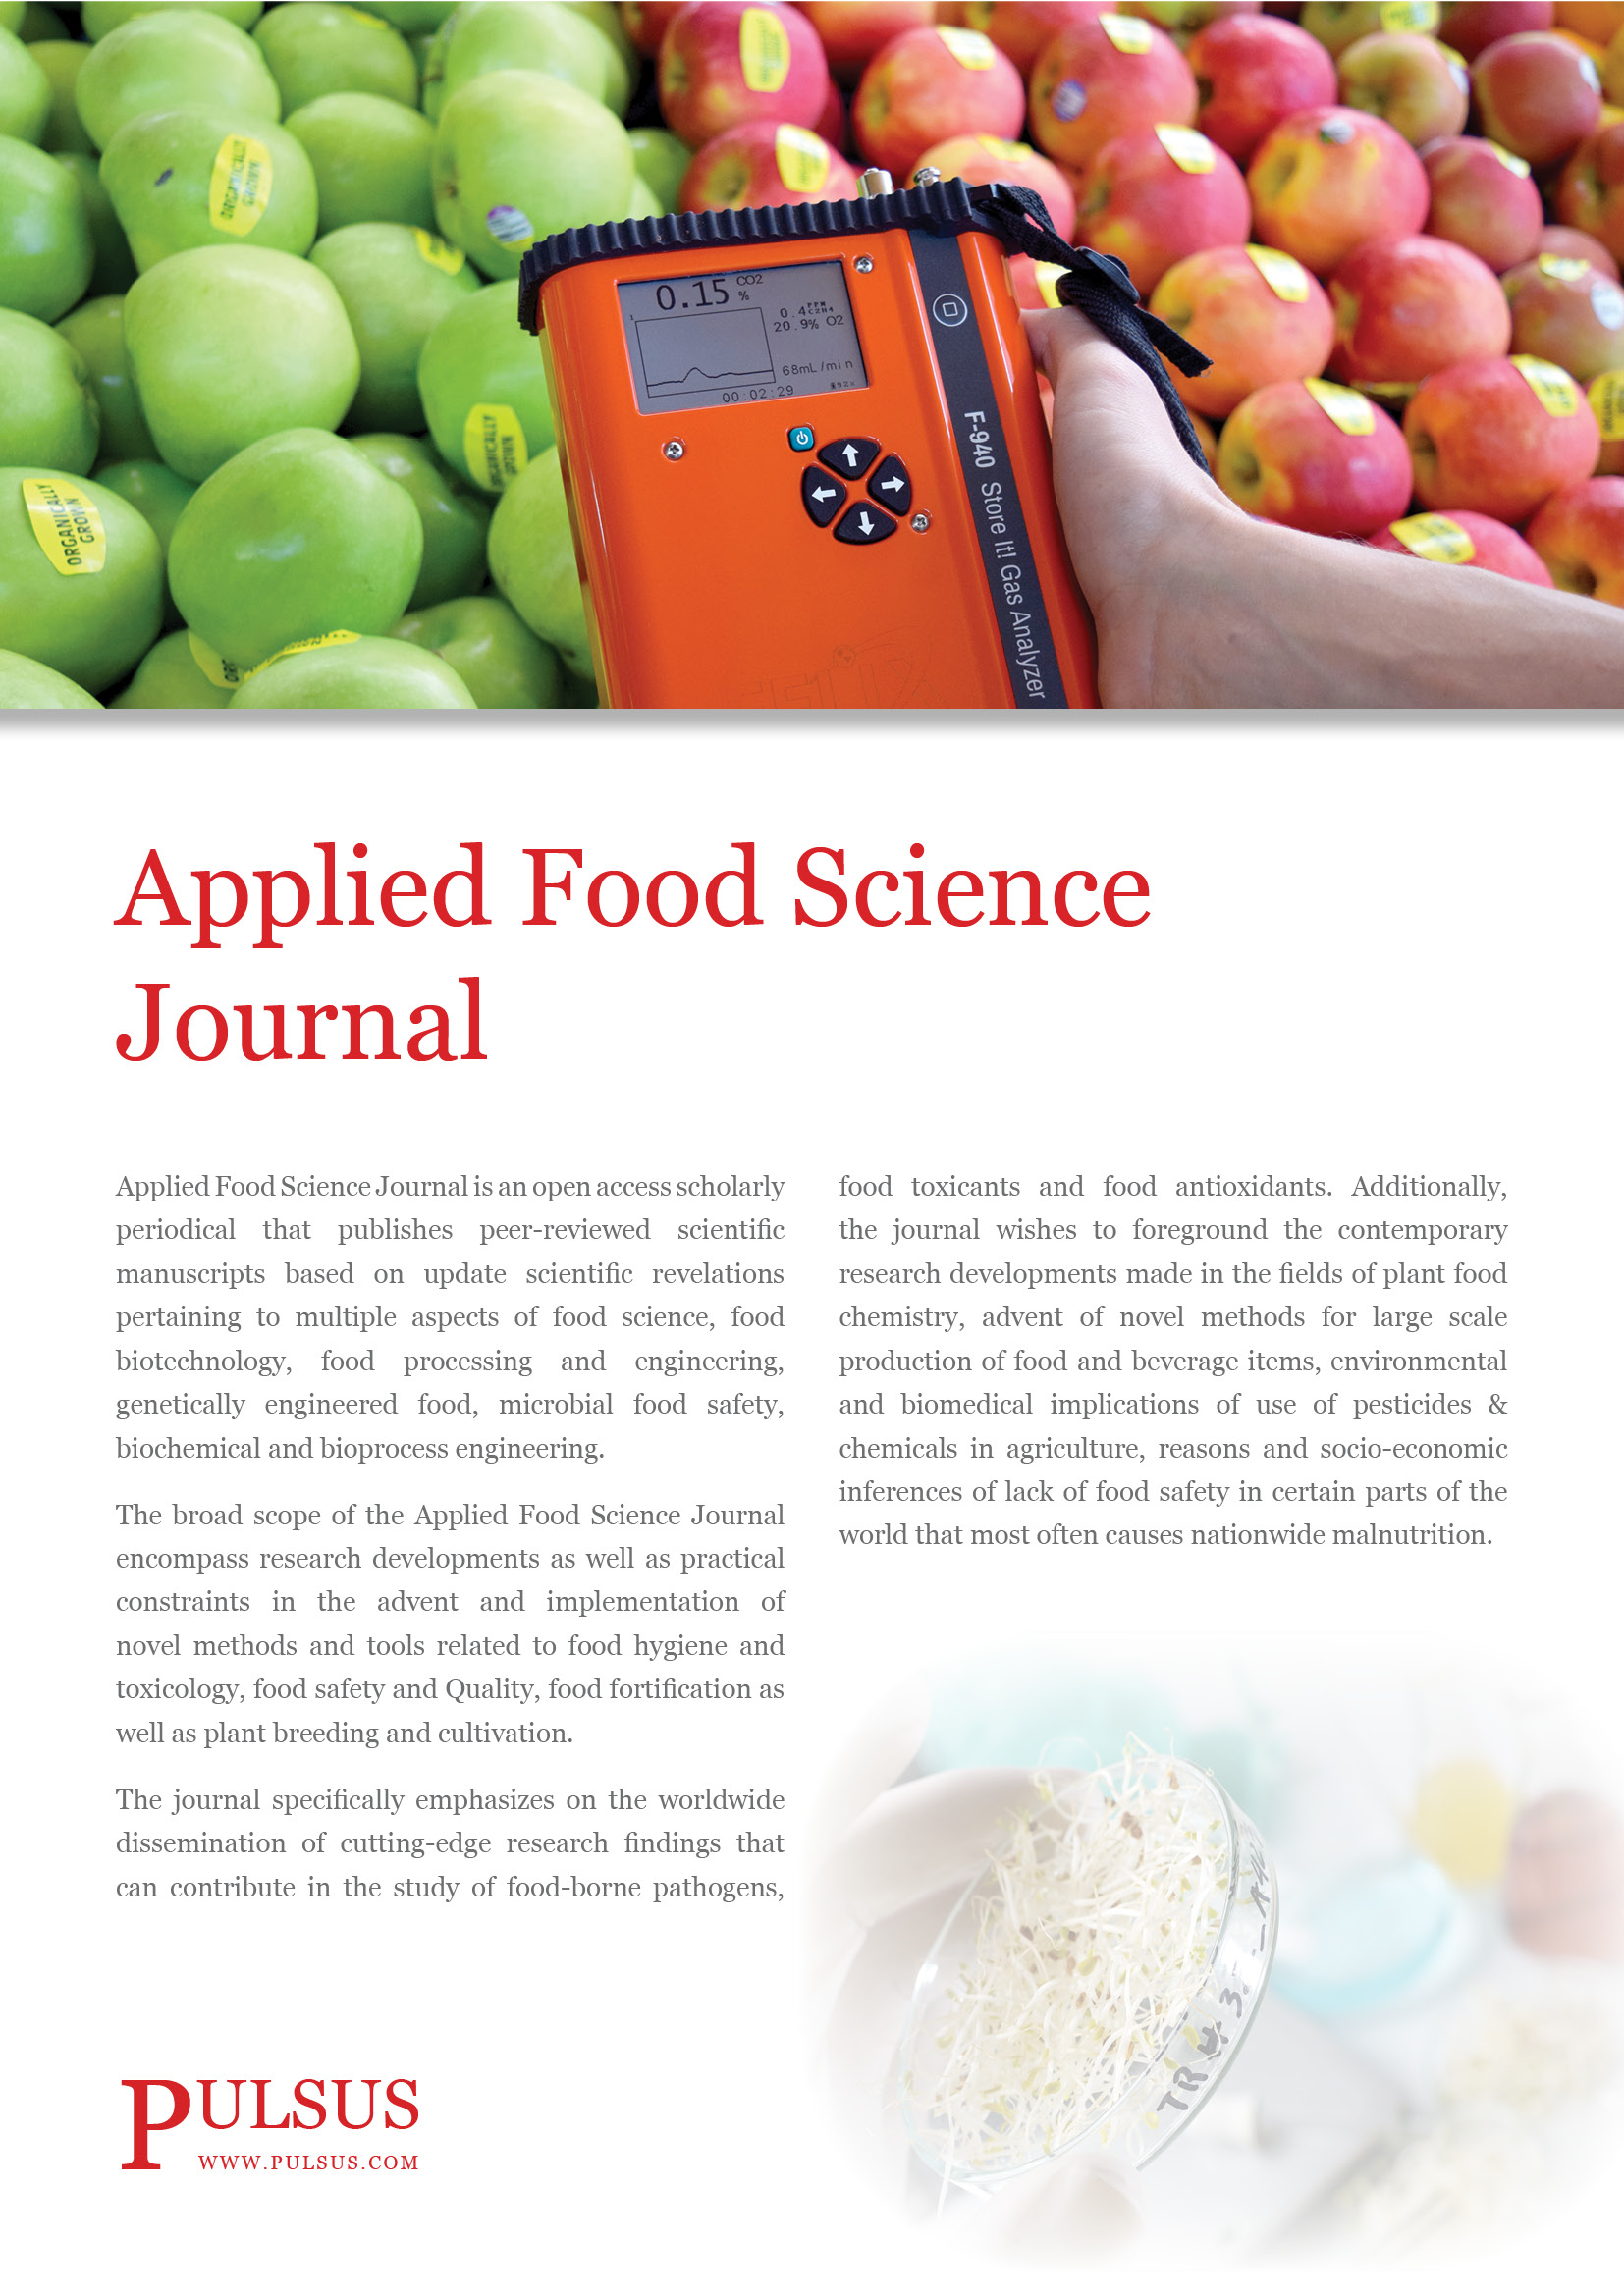 Applied Food Science Journal